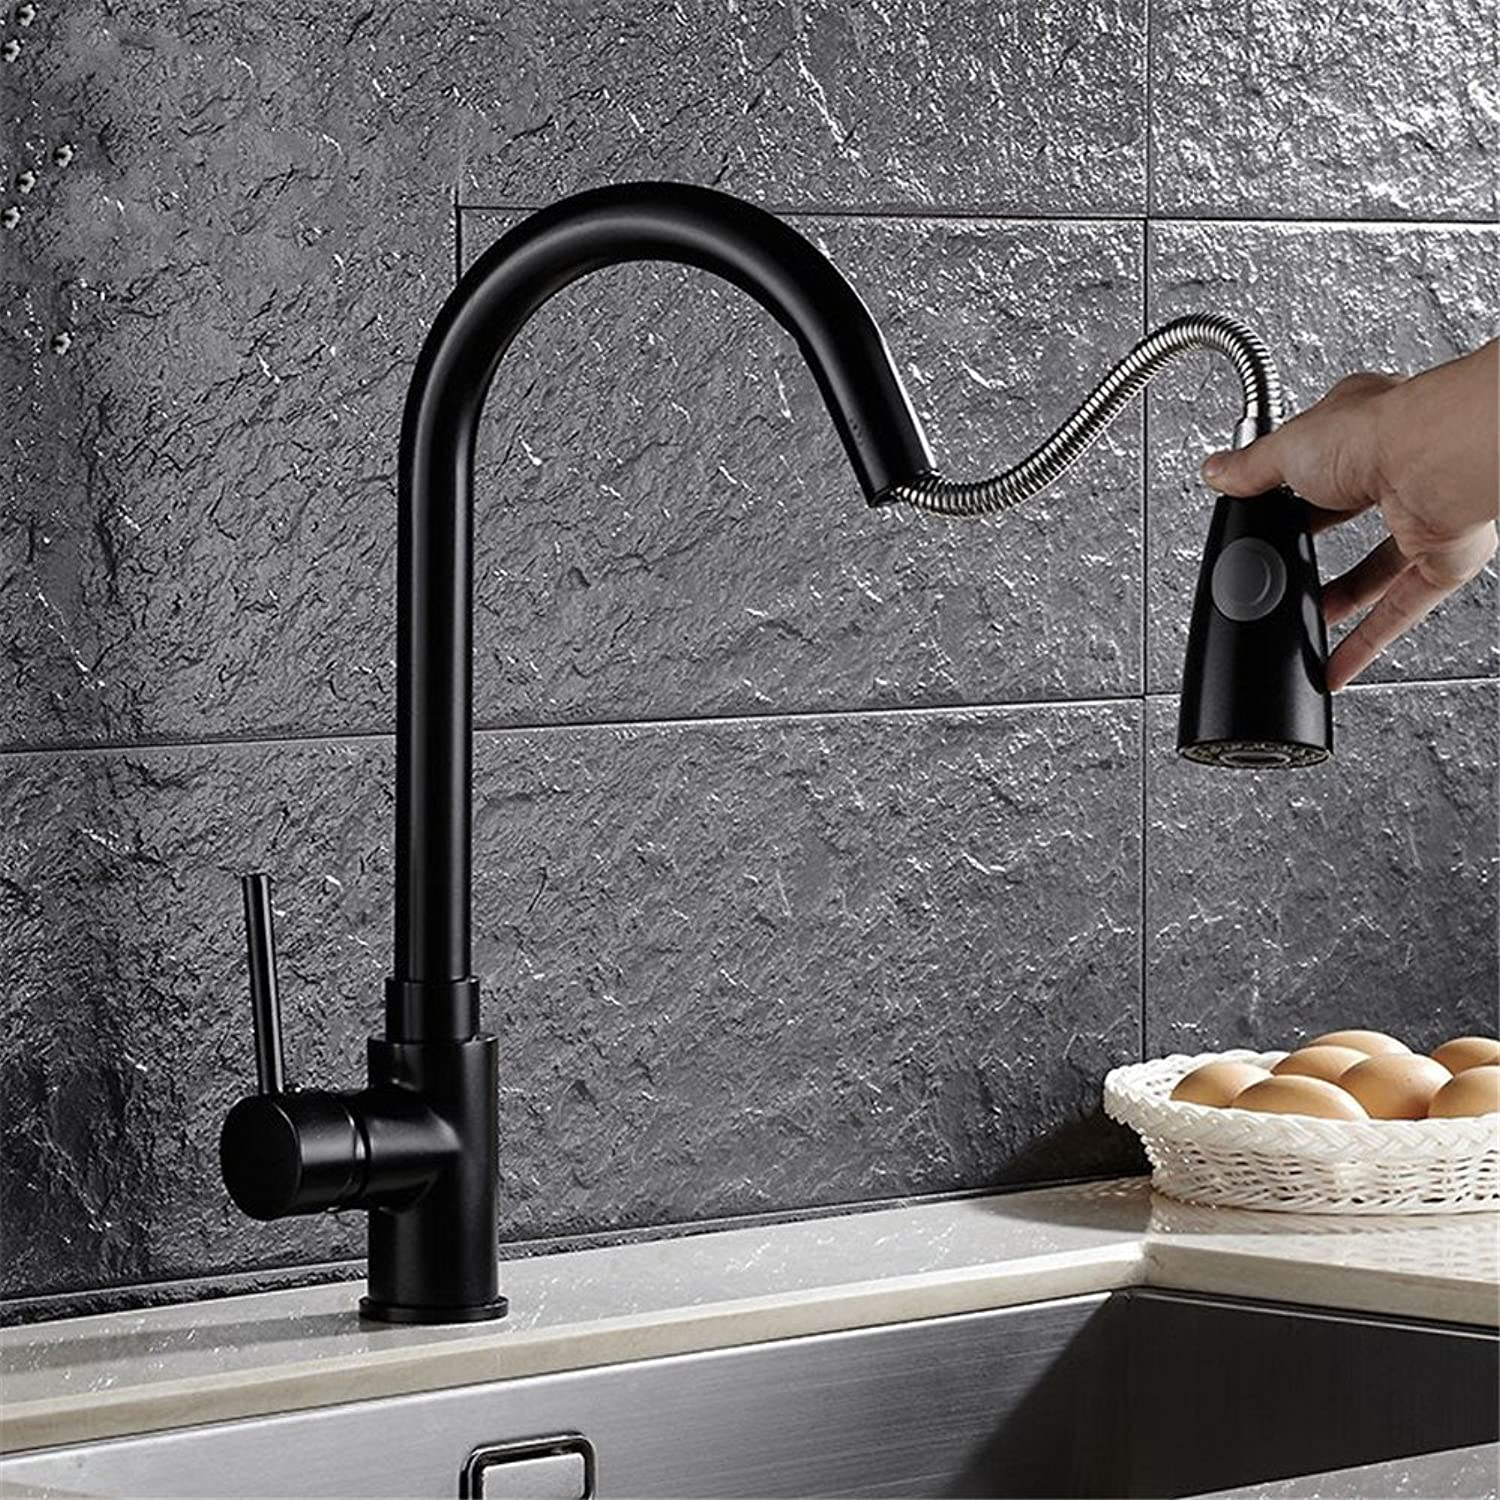 Commercial Single Lever Pull Down Kitchen Sink Faucet Brass Constructed Polished Kitchen Pull-Out Dual Mode Outlet Faucet Sink Sink Hot and Cold redating Black Faucet